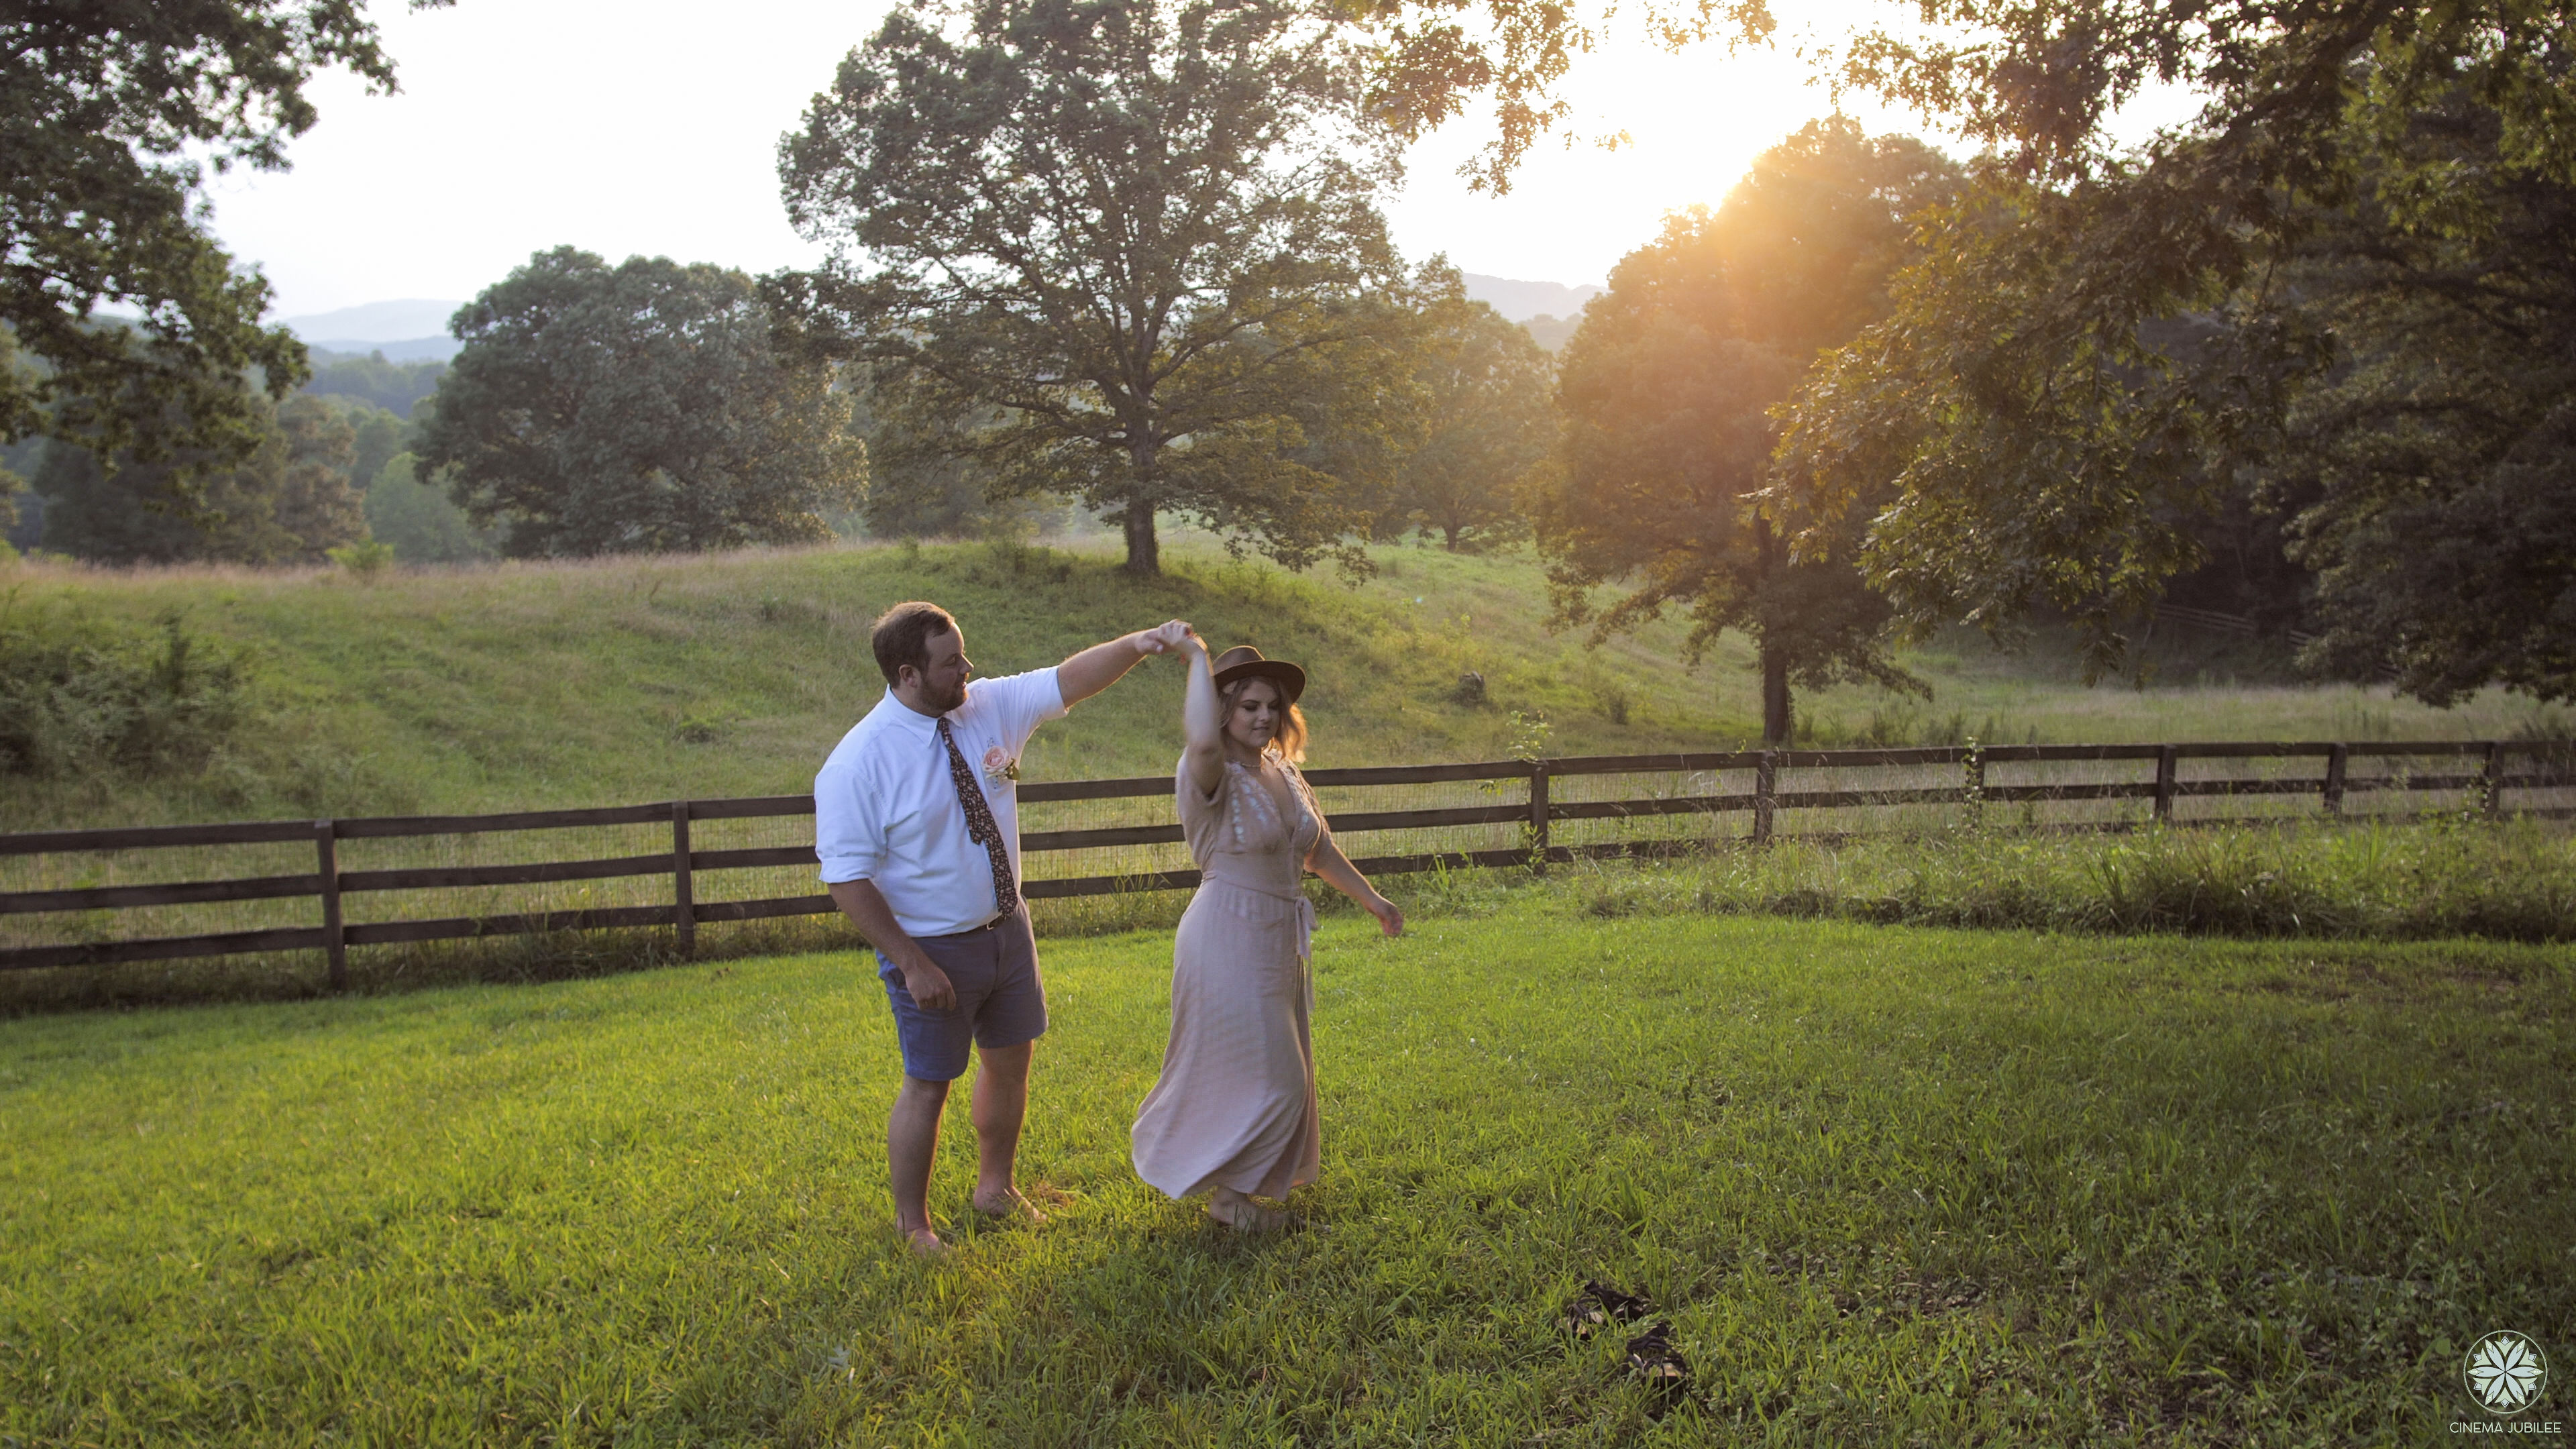 Hannah + Lane | Helen, Georgia | Sautee Valley View, Helen